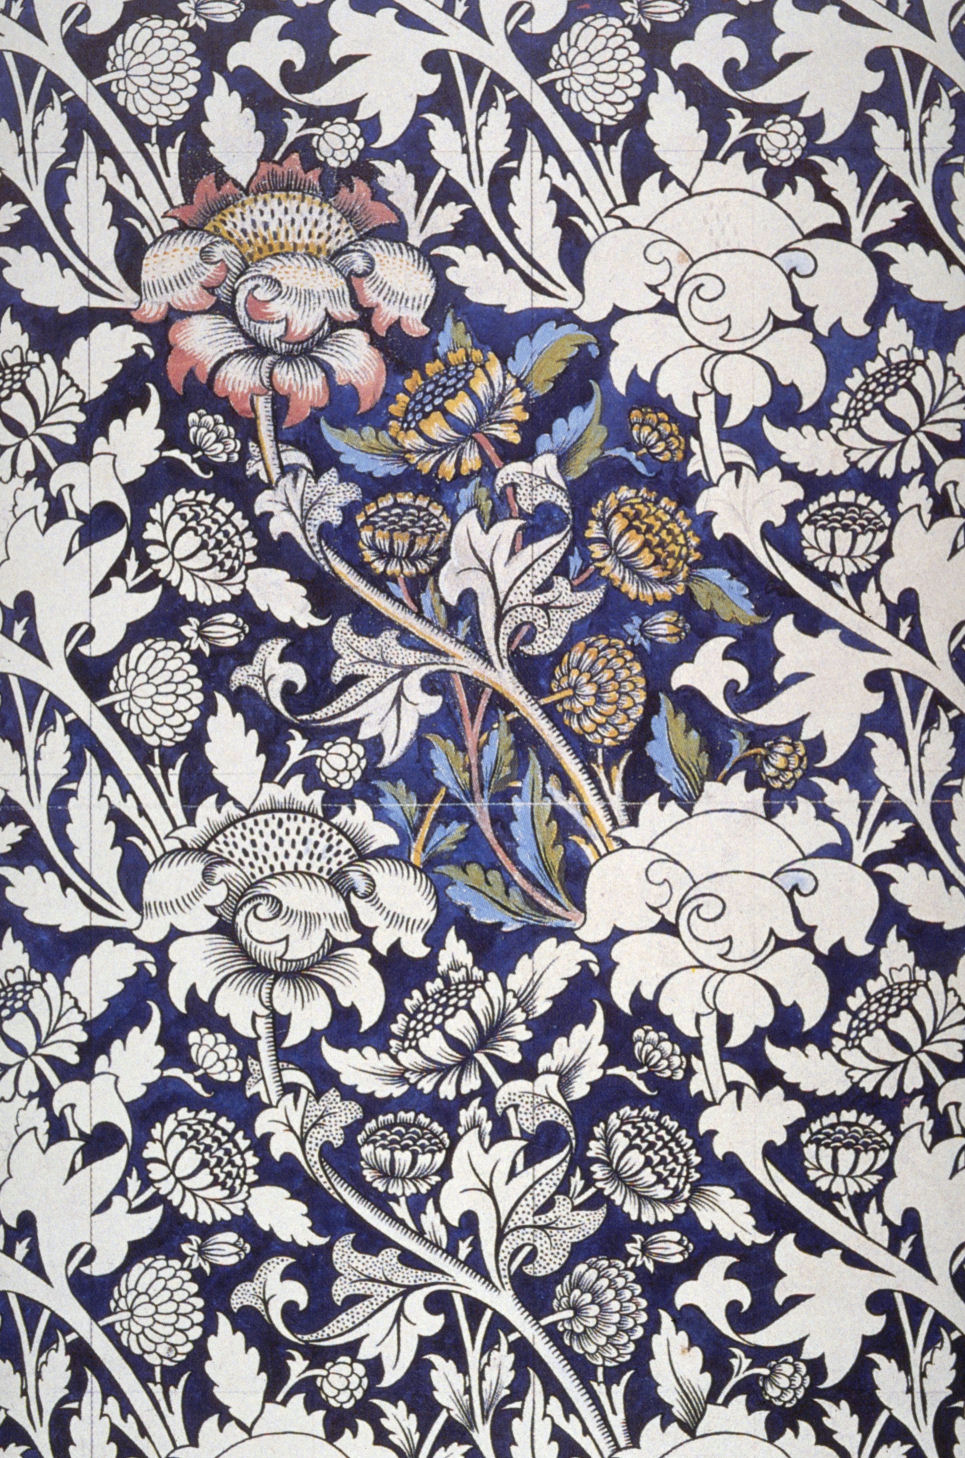 Wonderful William Morris Textile Design 965 x 1458 · 461 kB · jpeg